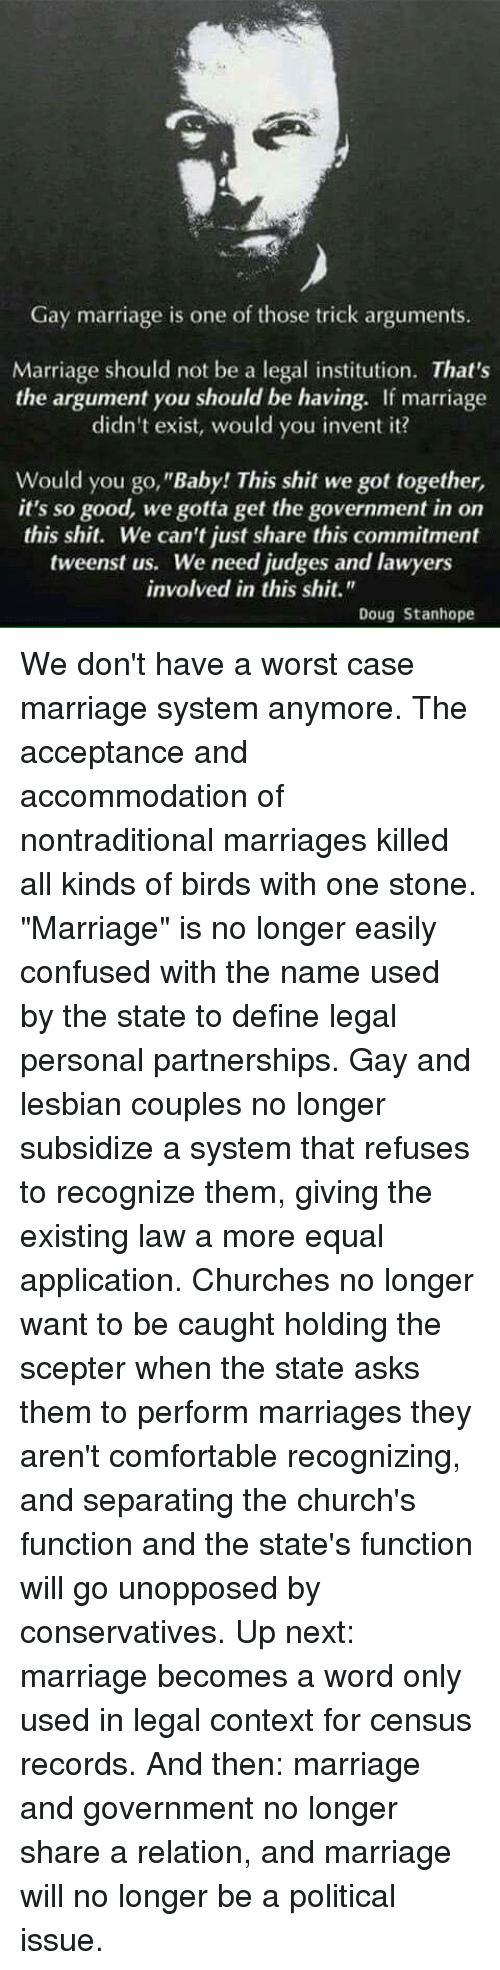 """Comfortable, Confused, and Doug: Gay marriage is one of those trick arguments.  Marriage should not be a legal institution. That's  the argument you should be having. If marriage  didn't exist, would you invent it?  Would you go, """"Baby! This shit we got together,  it's so good, we gotta get the government in on  this shit. We can't just share this commitment  tweenst us. We need judges and lawyers  involved in this shit.""""  Doug Stanhope We don't have a worst case marriage system anymore. The acceptance and accommodation of nontraditional marriages killed all kinds of birds with one stone.  """"Marriage"""" is no longer easily confused with the name used by the state to define legal personal partnerships.  Gay and lesbian couples no longer subsidize a system that refuses to recognize them, giving the existing law a more equal application.  Churches no longer want to be caught holding the scepter when the state asks them to perform marriages they aren't comfortable recognizing, and separating the church's function and the state's function will go unopposed by conservatives.  Up next: marriage becomes a word only used in legal context for census records.  And then: marriage and government no longer share a relation, and marriage will no longer be a political issue."""